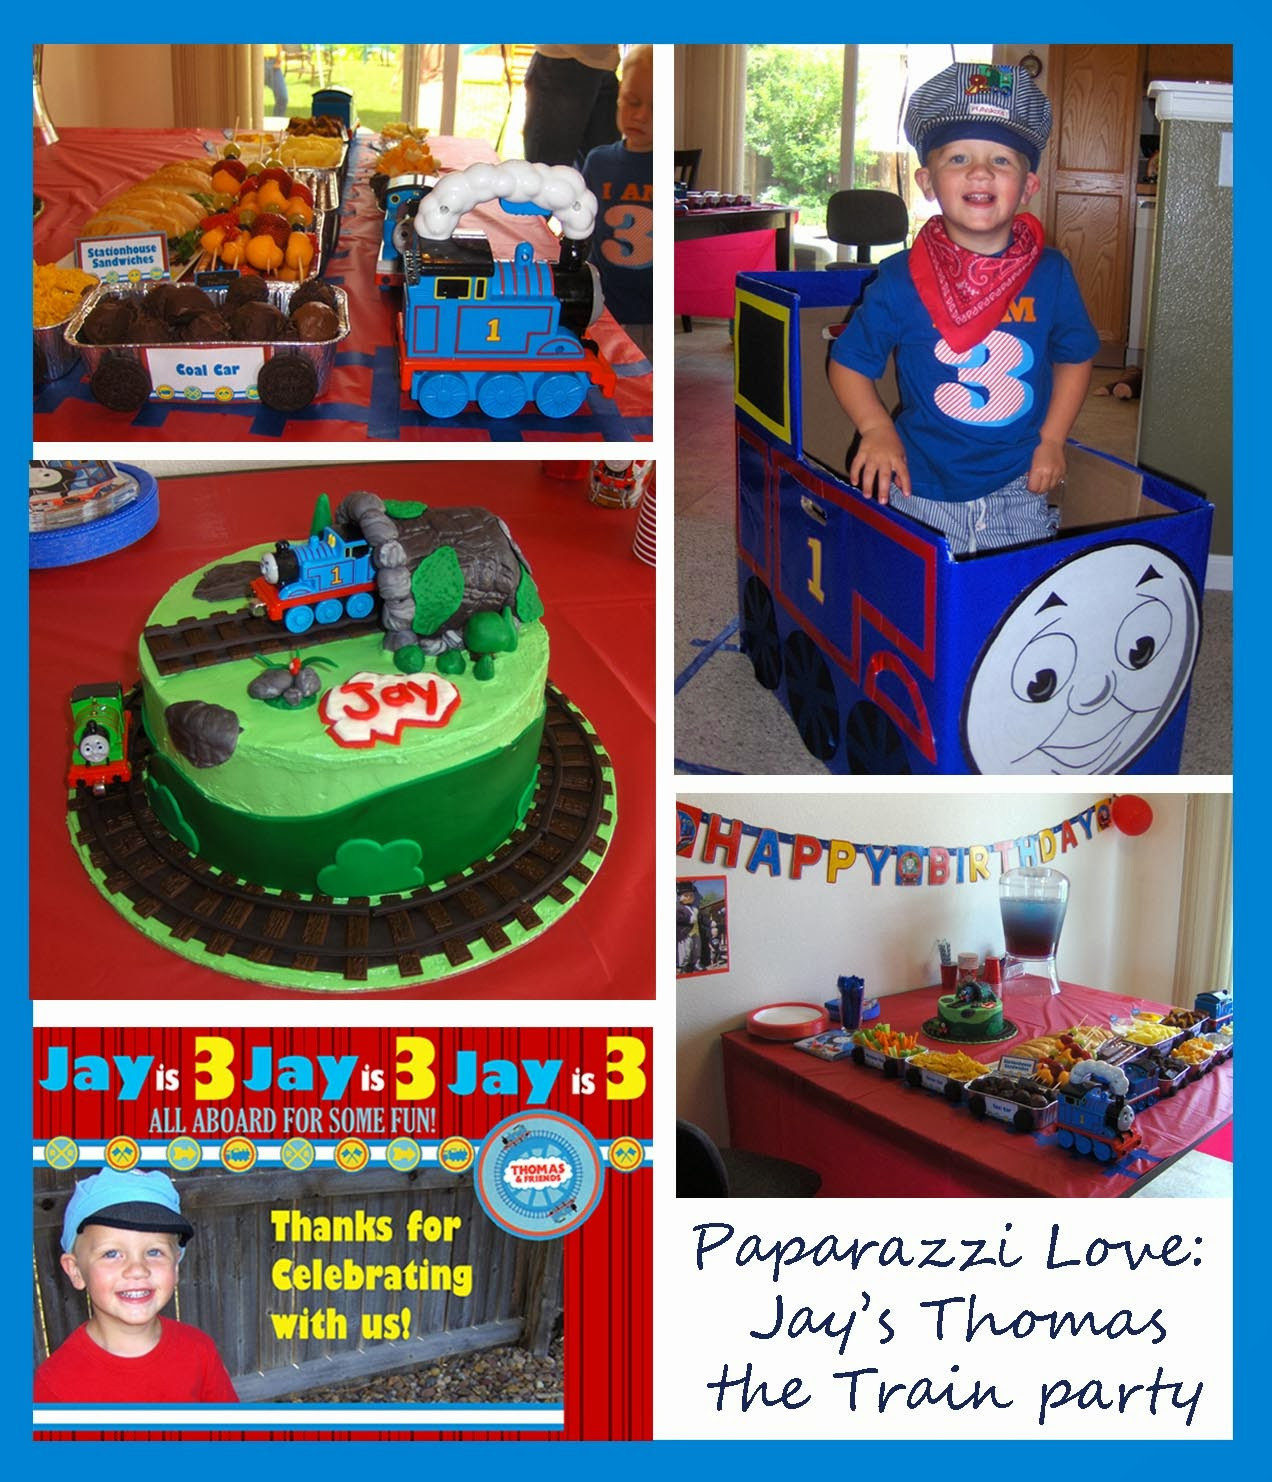 Thomas The Train Birthday Decorations  Paparazzi Love Jay s Thomas the Train Birthday Party